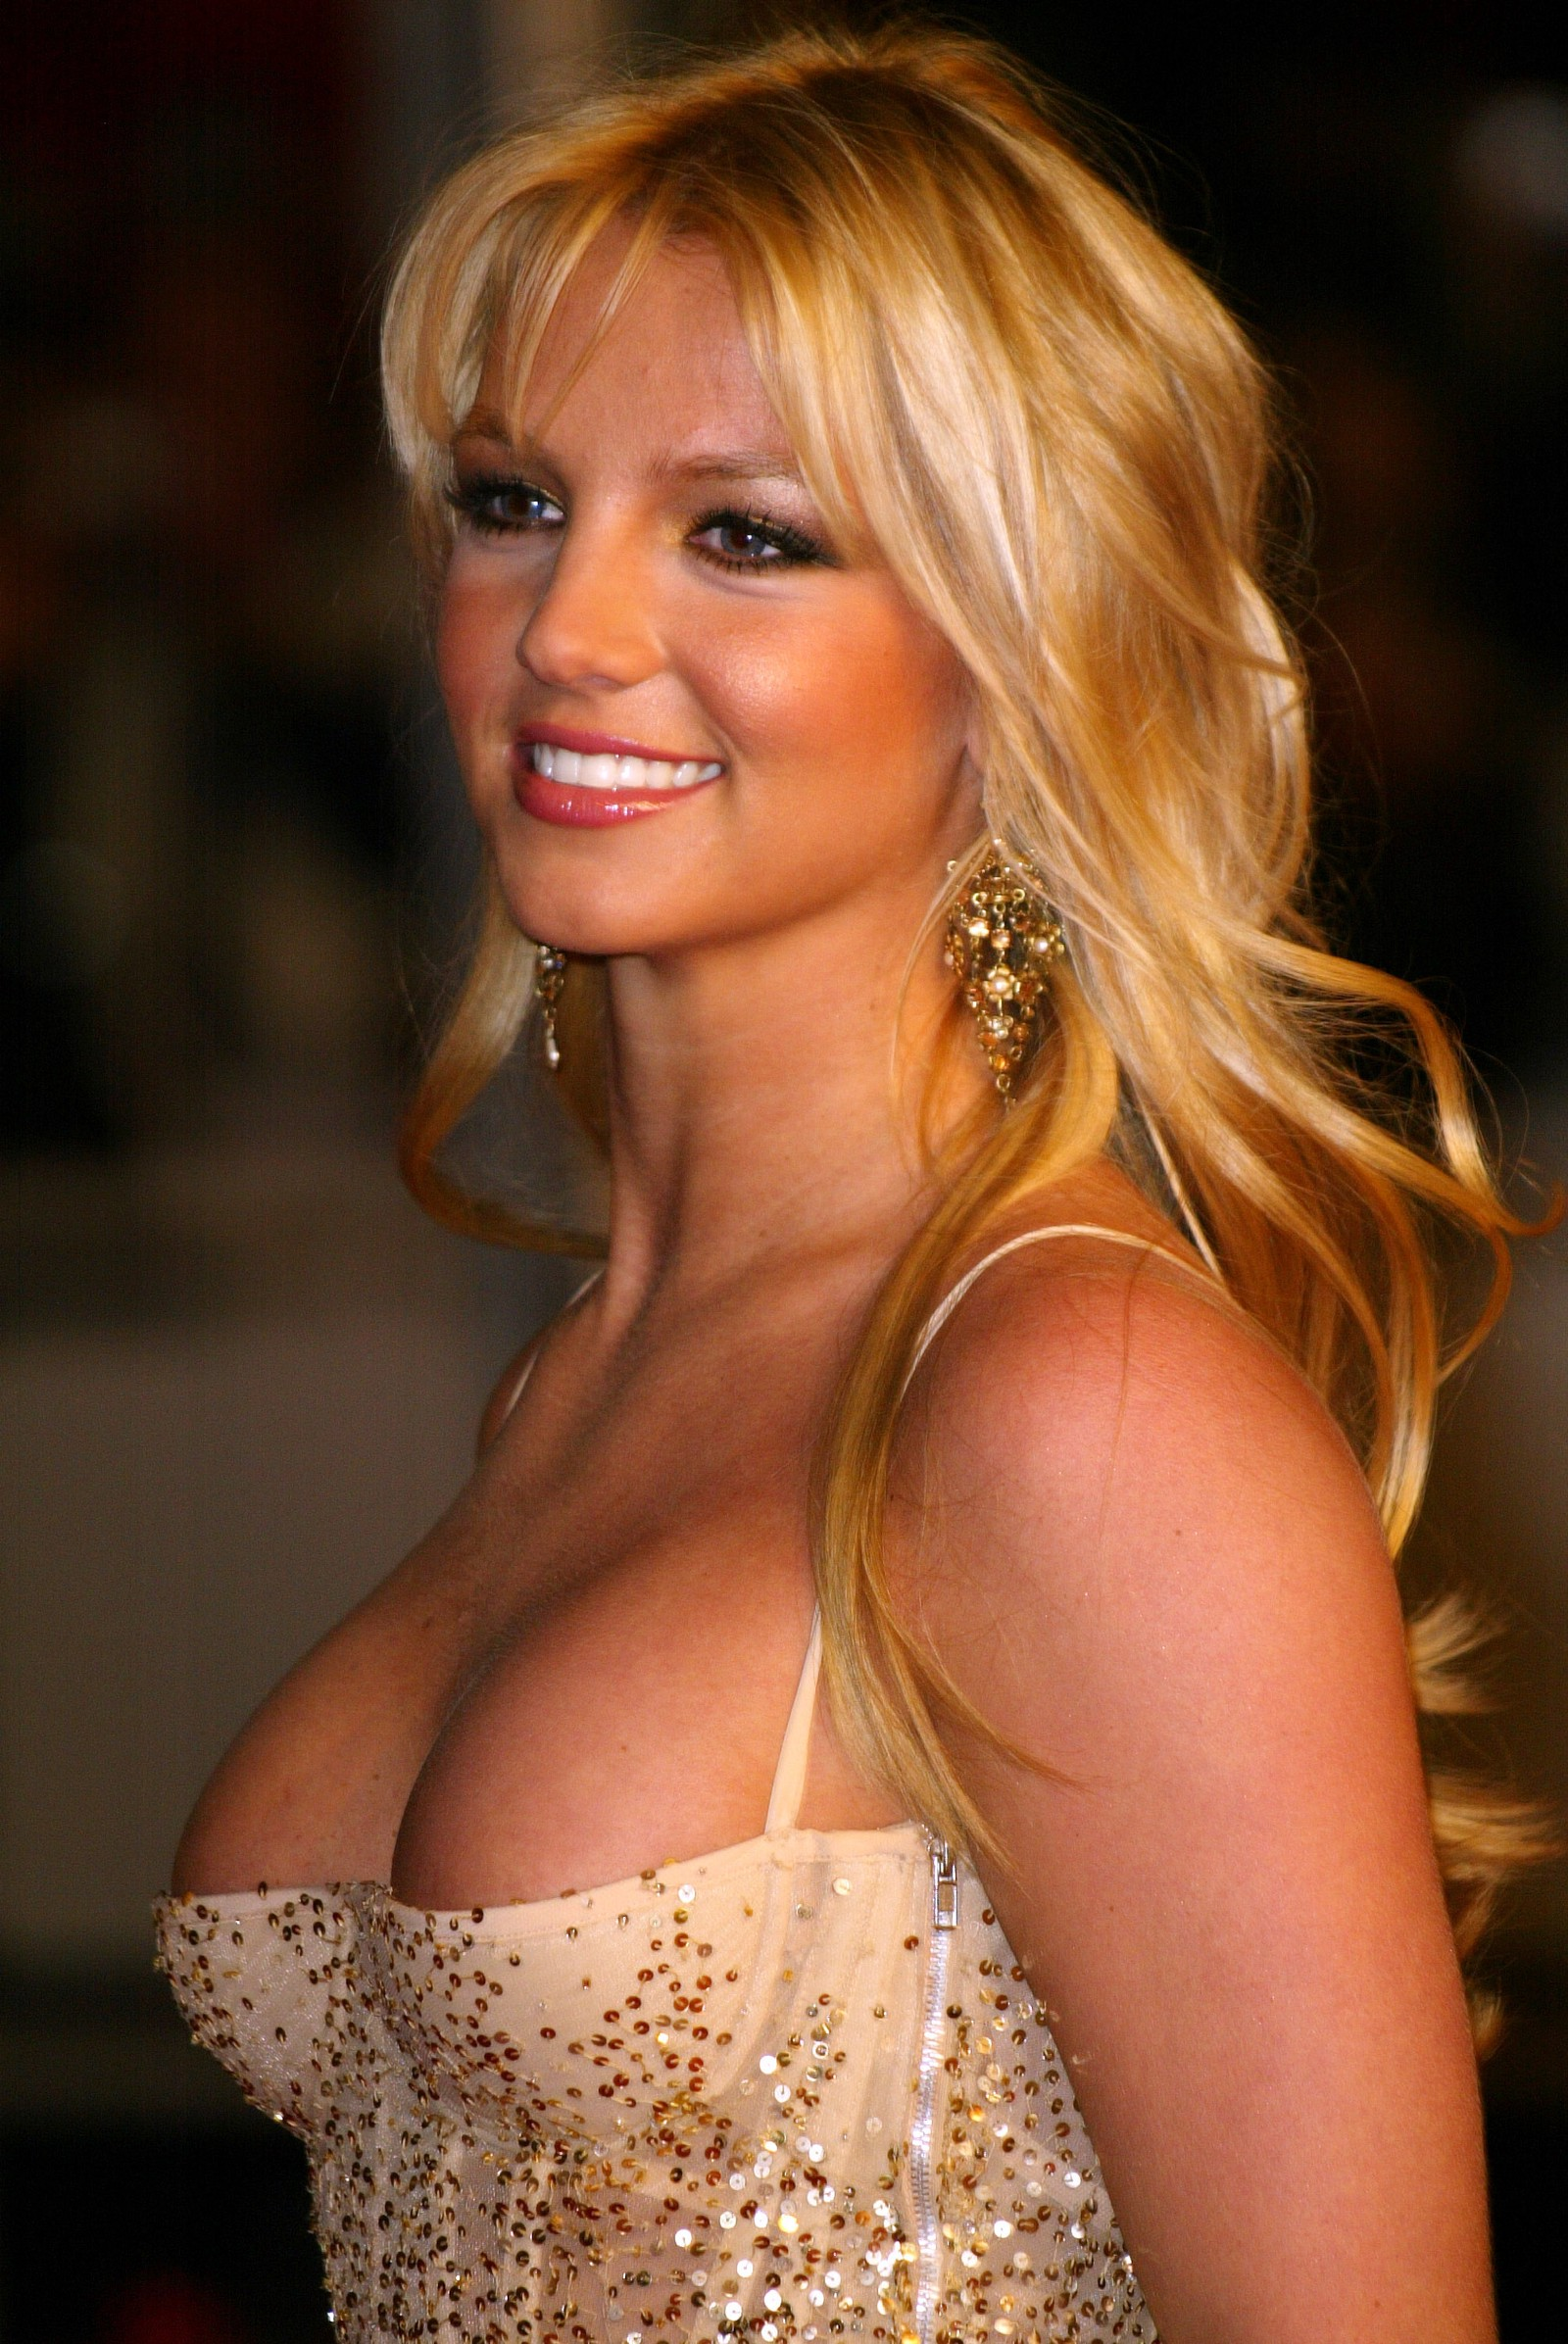 pictures-of-britney-spears-breasts-cleavage